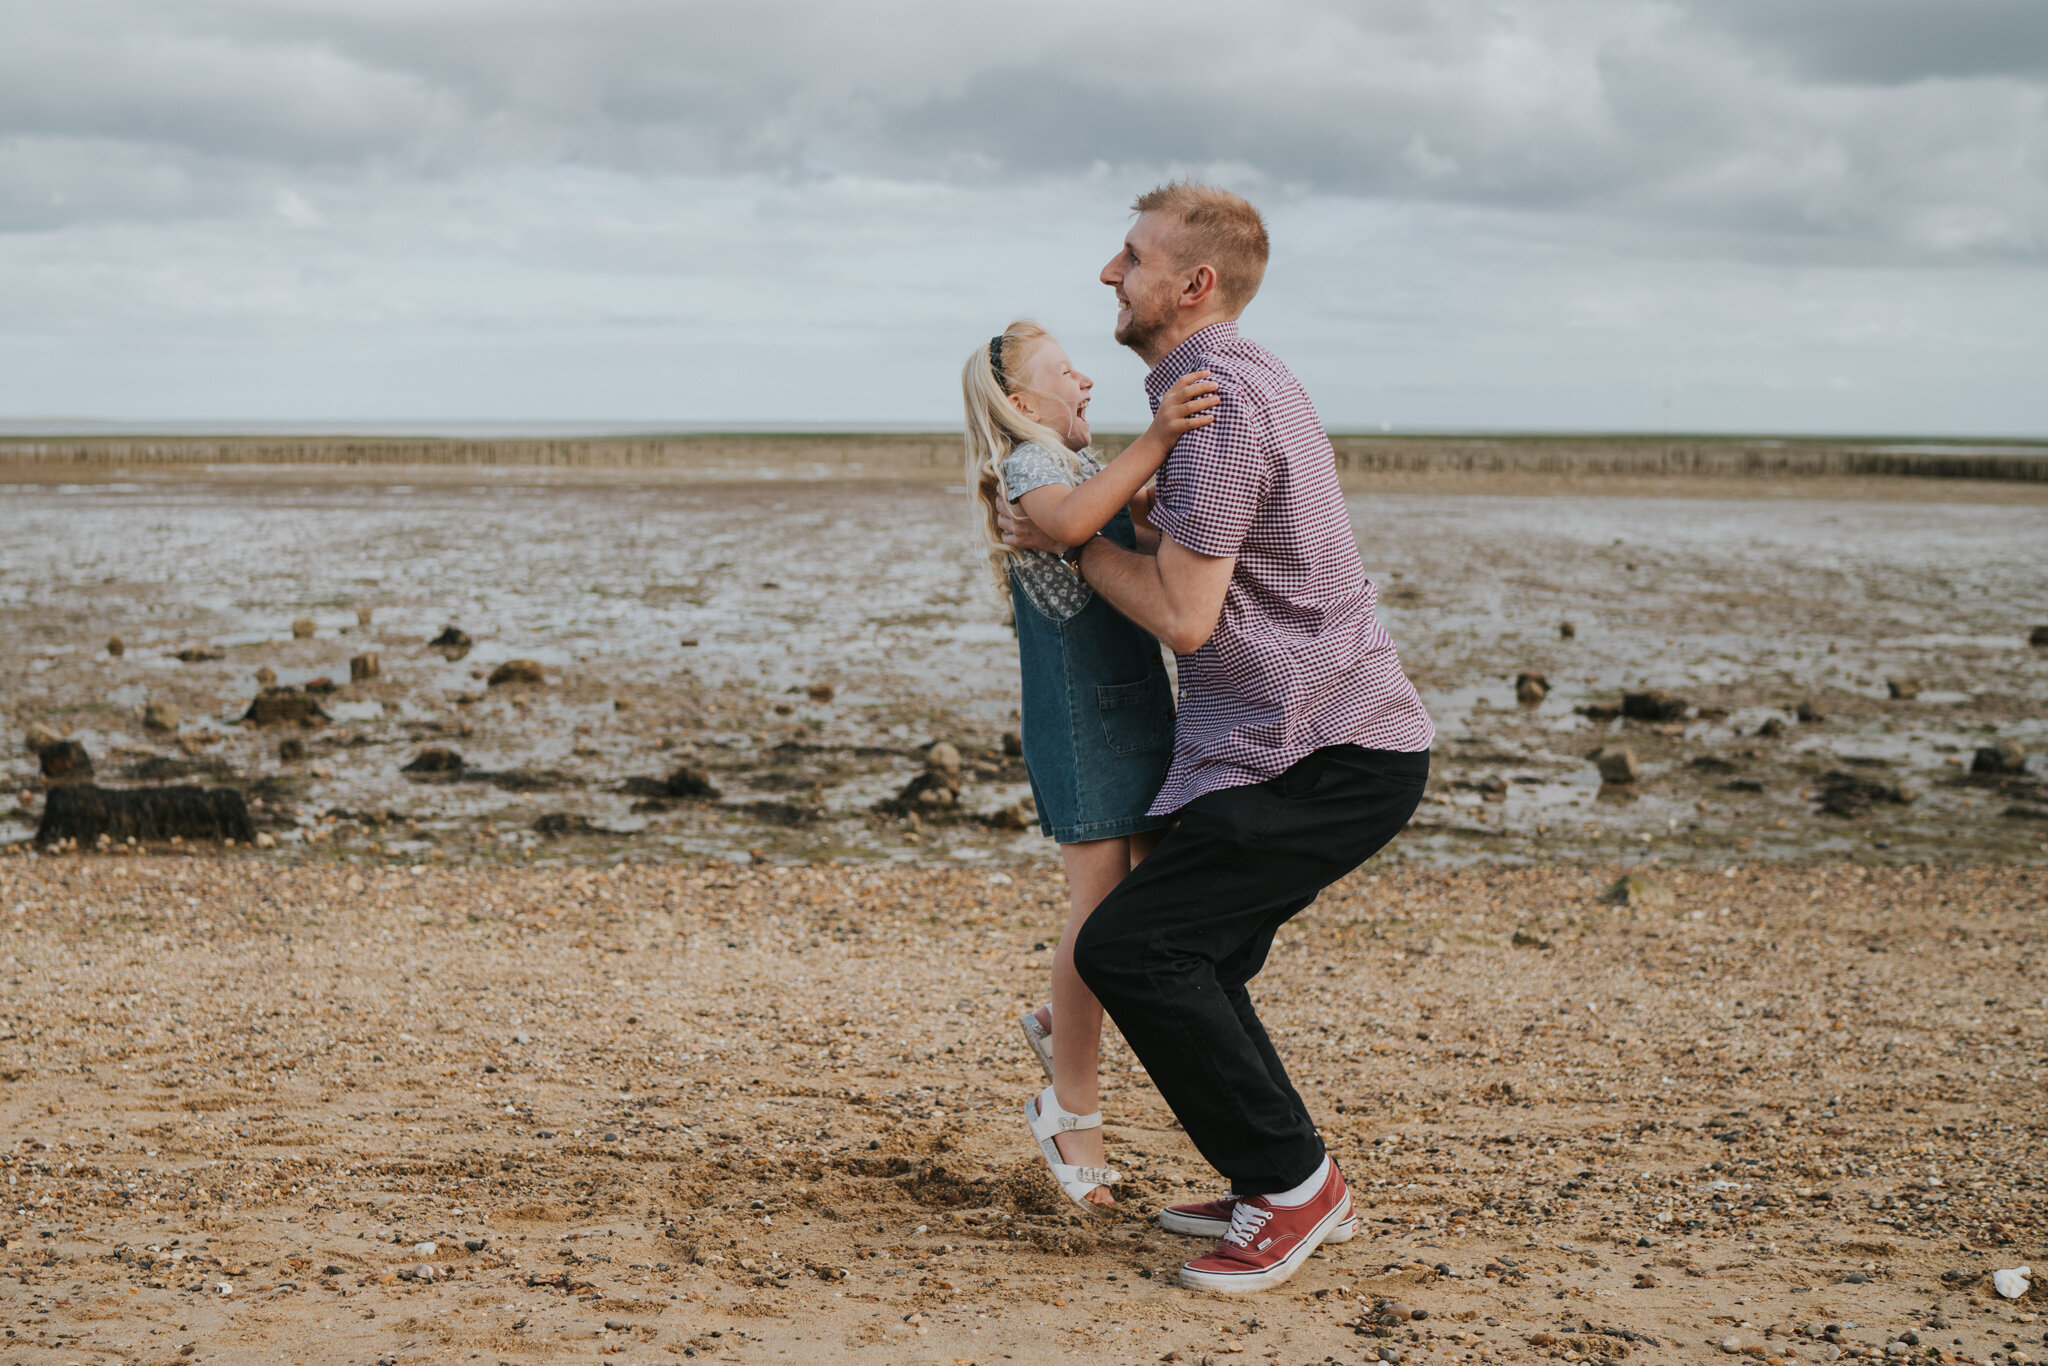 celebratory-beach-family-session-thomson-family-cudmore-grove-east-mersea-grace-elizabeth-colchester-essex-devon-suffolk-and-norfolk-alternative-wedding-and-family-photographer (29 of 53).jpg